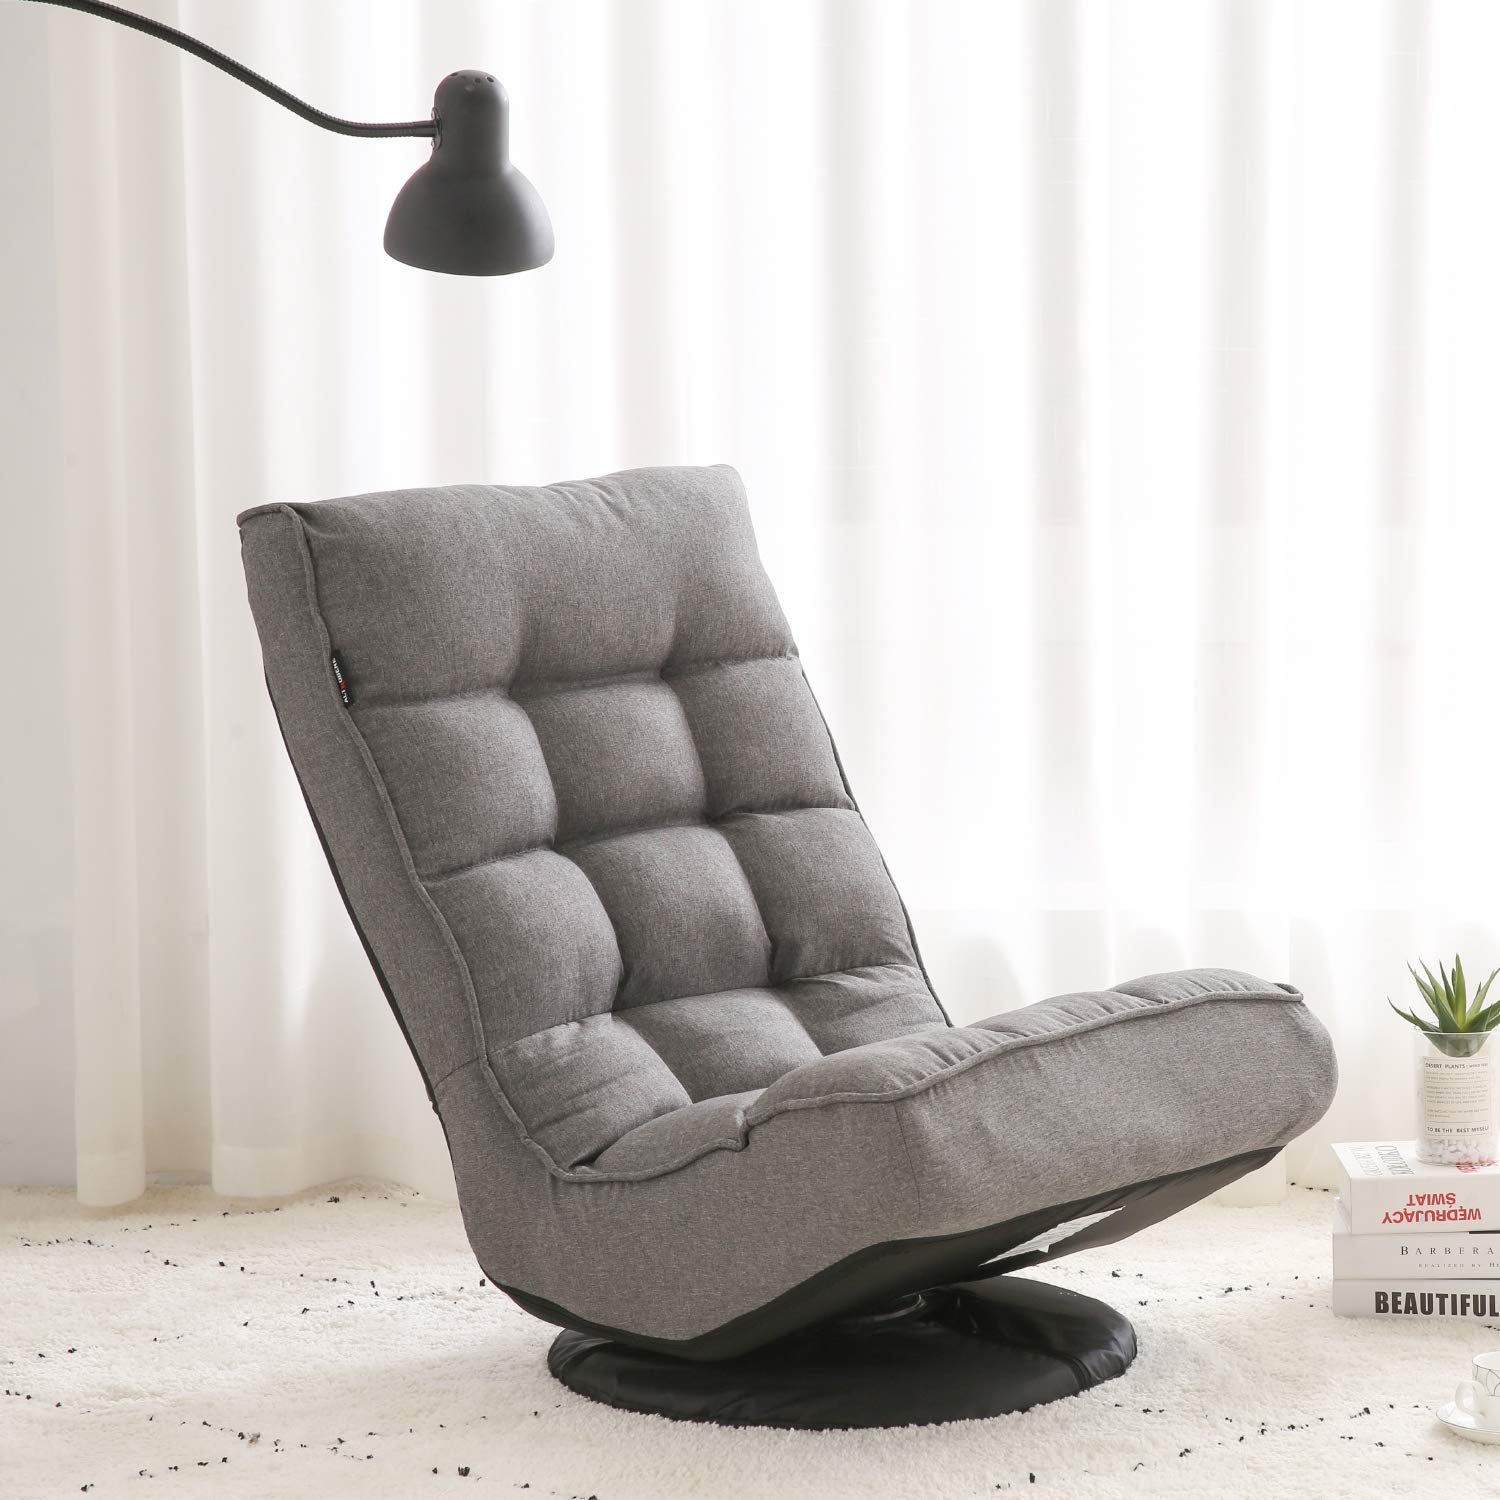 Altrobene Ergonomic Floor Gaming Chair, Lazy Sofa Sleeper, High Back, 360 Degree Swivel, Soft Padded, Grey